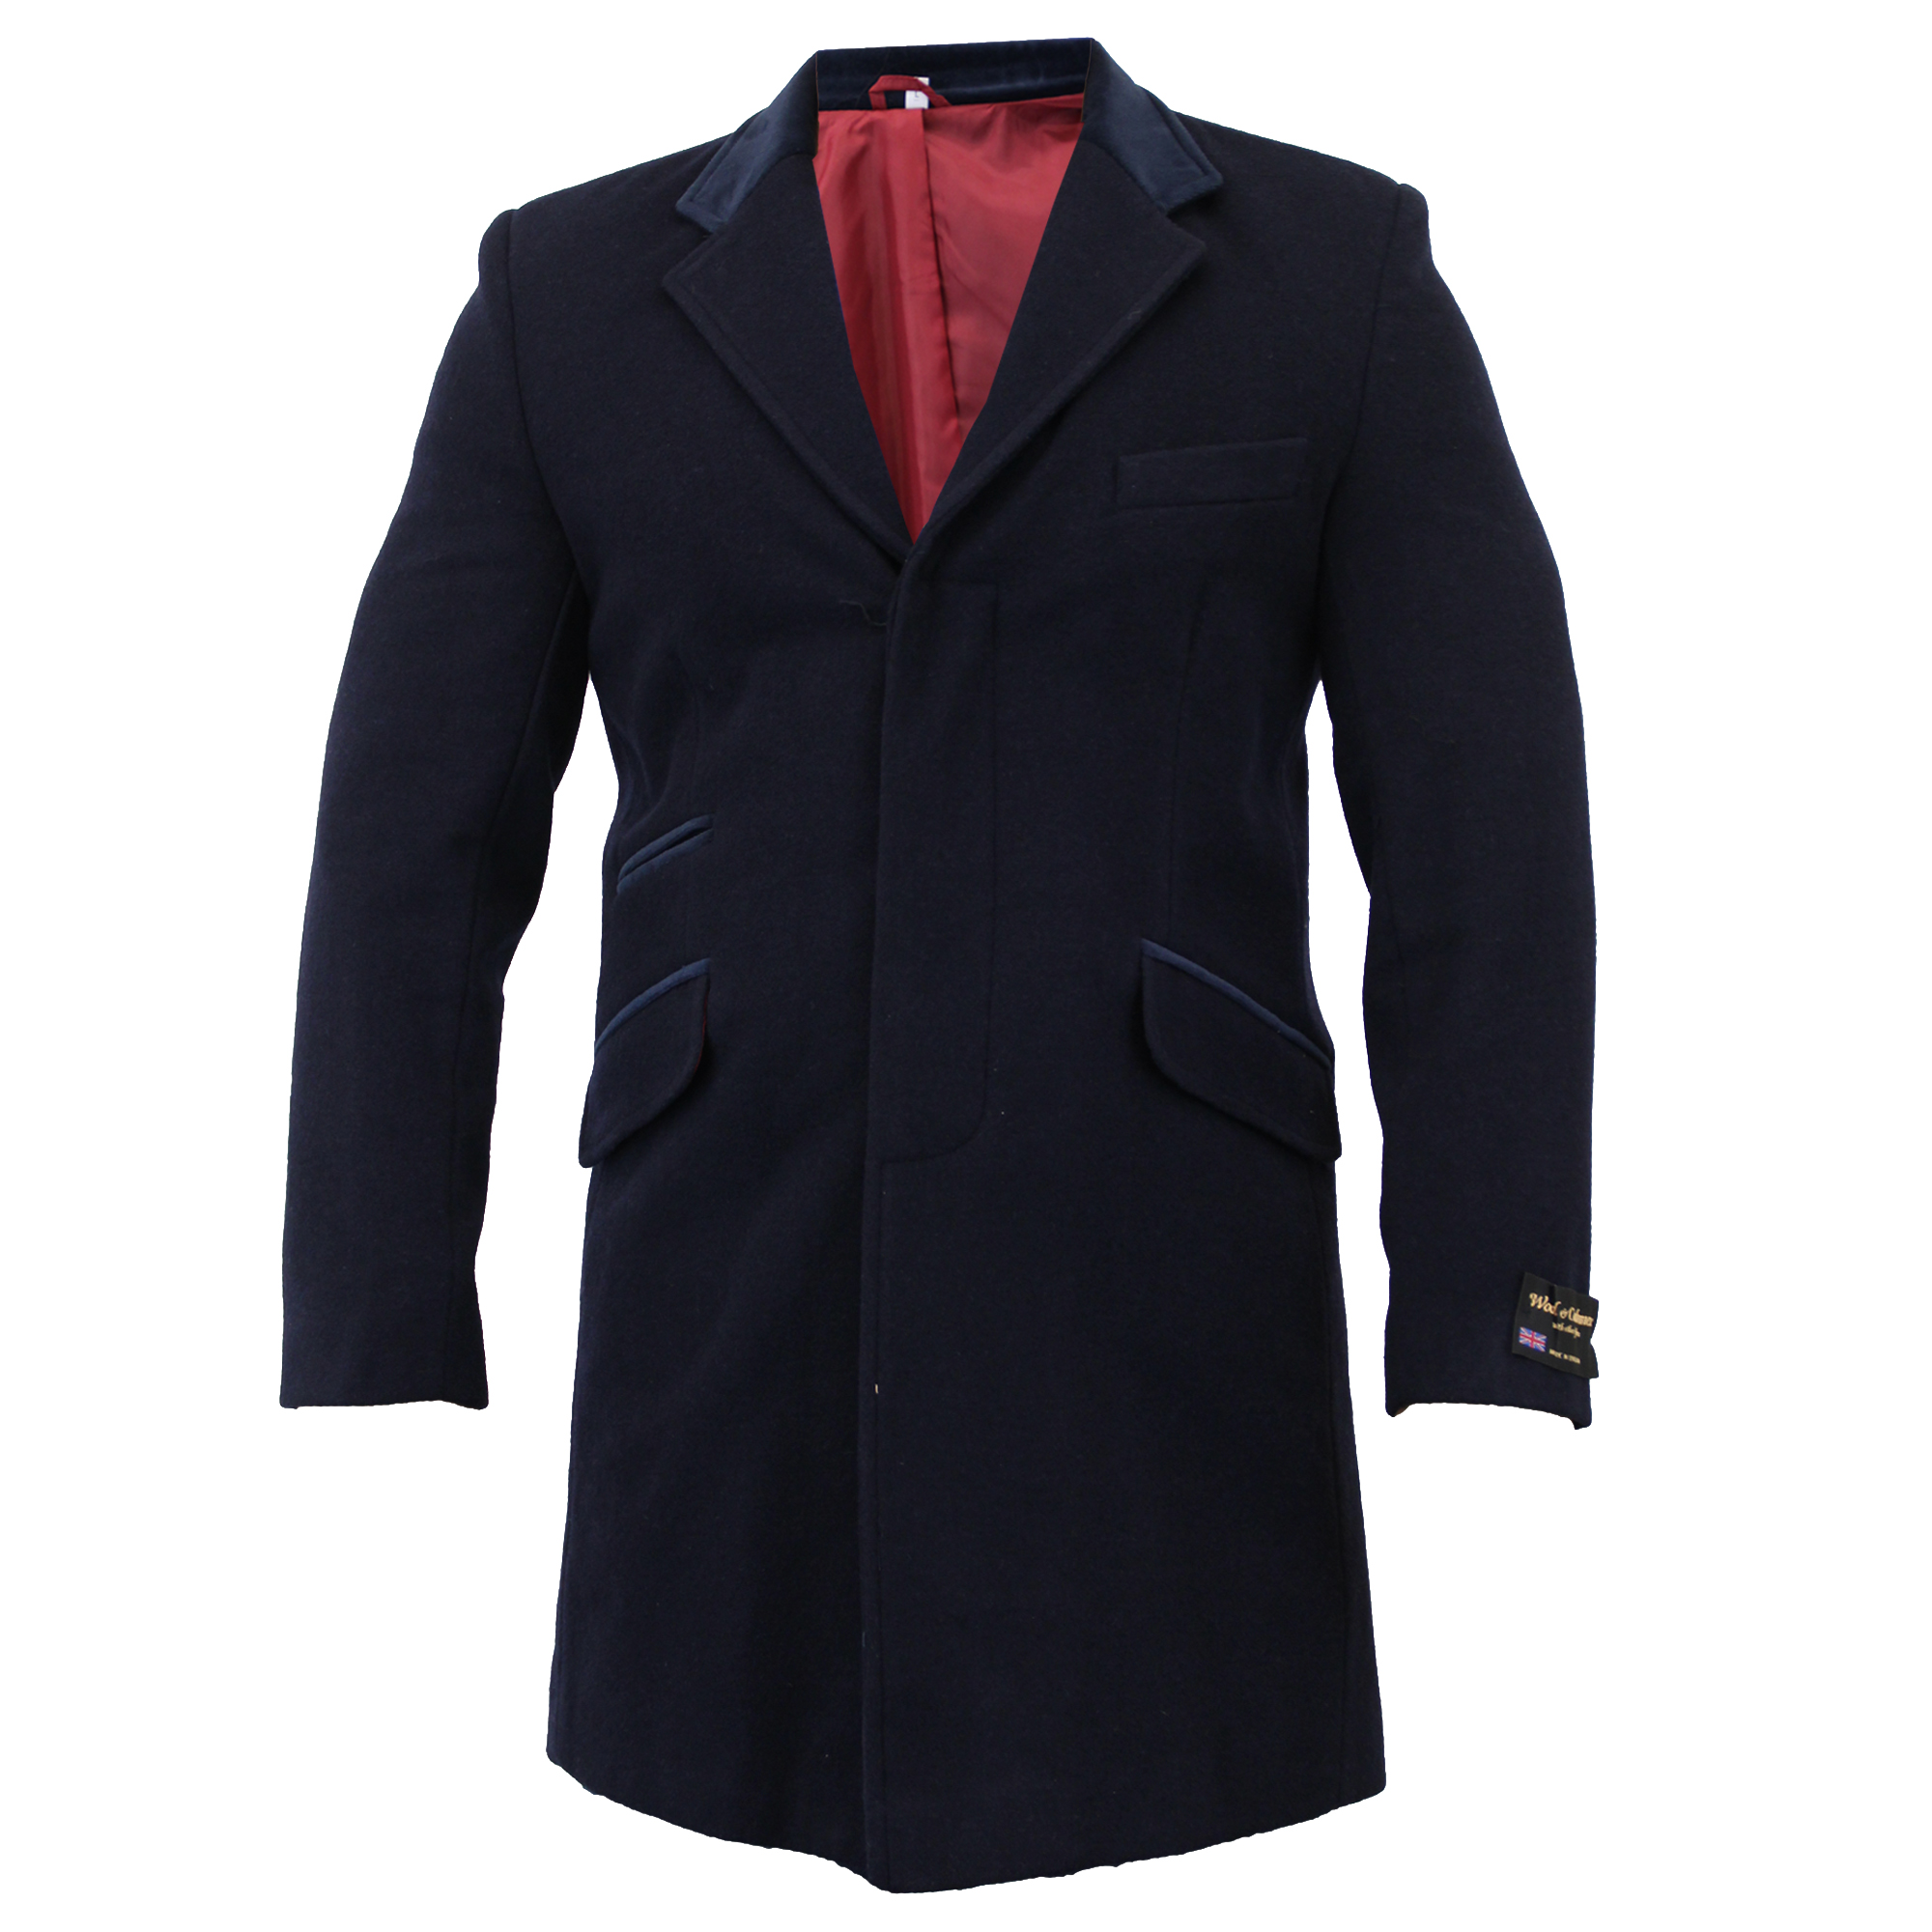 Mens Coat Wool Jacket Cashmere Casual Outerwear Overcoat